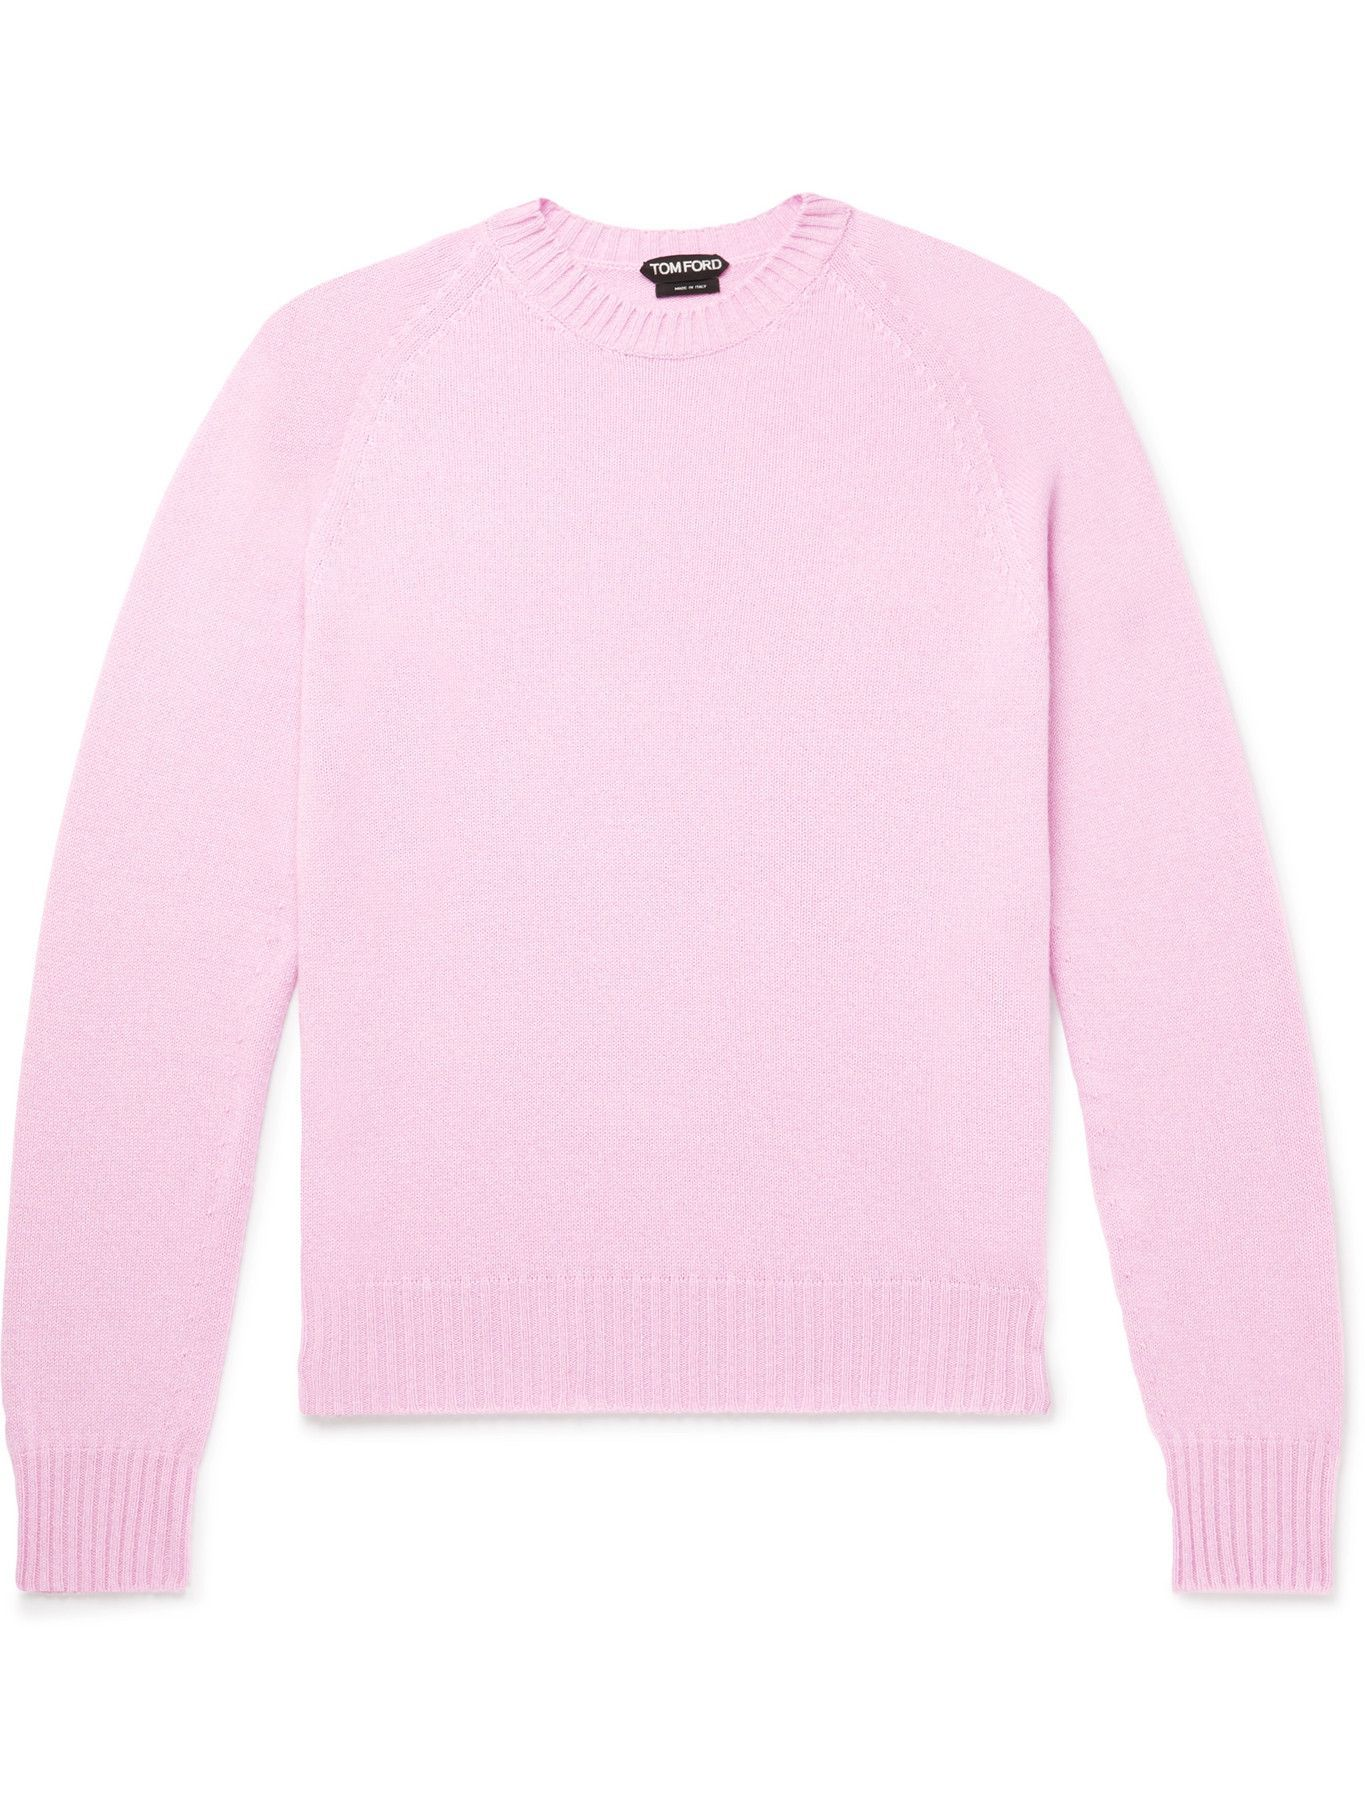 Photo: TOM FORD - Slim-Fit Cashmere and Cotton-Blend Sweater - Purple